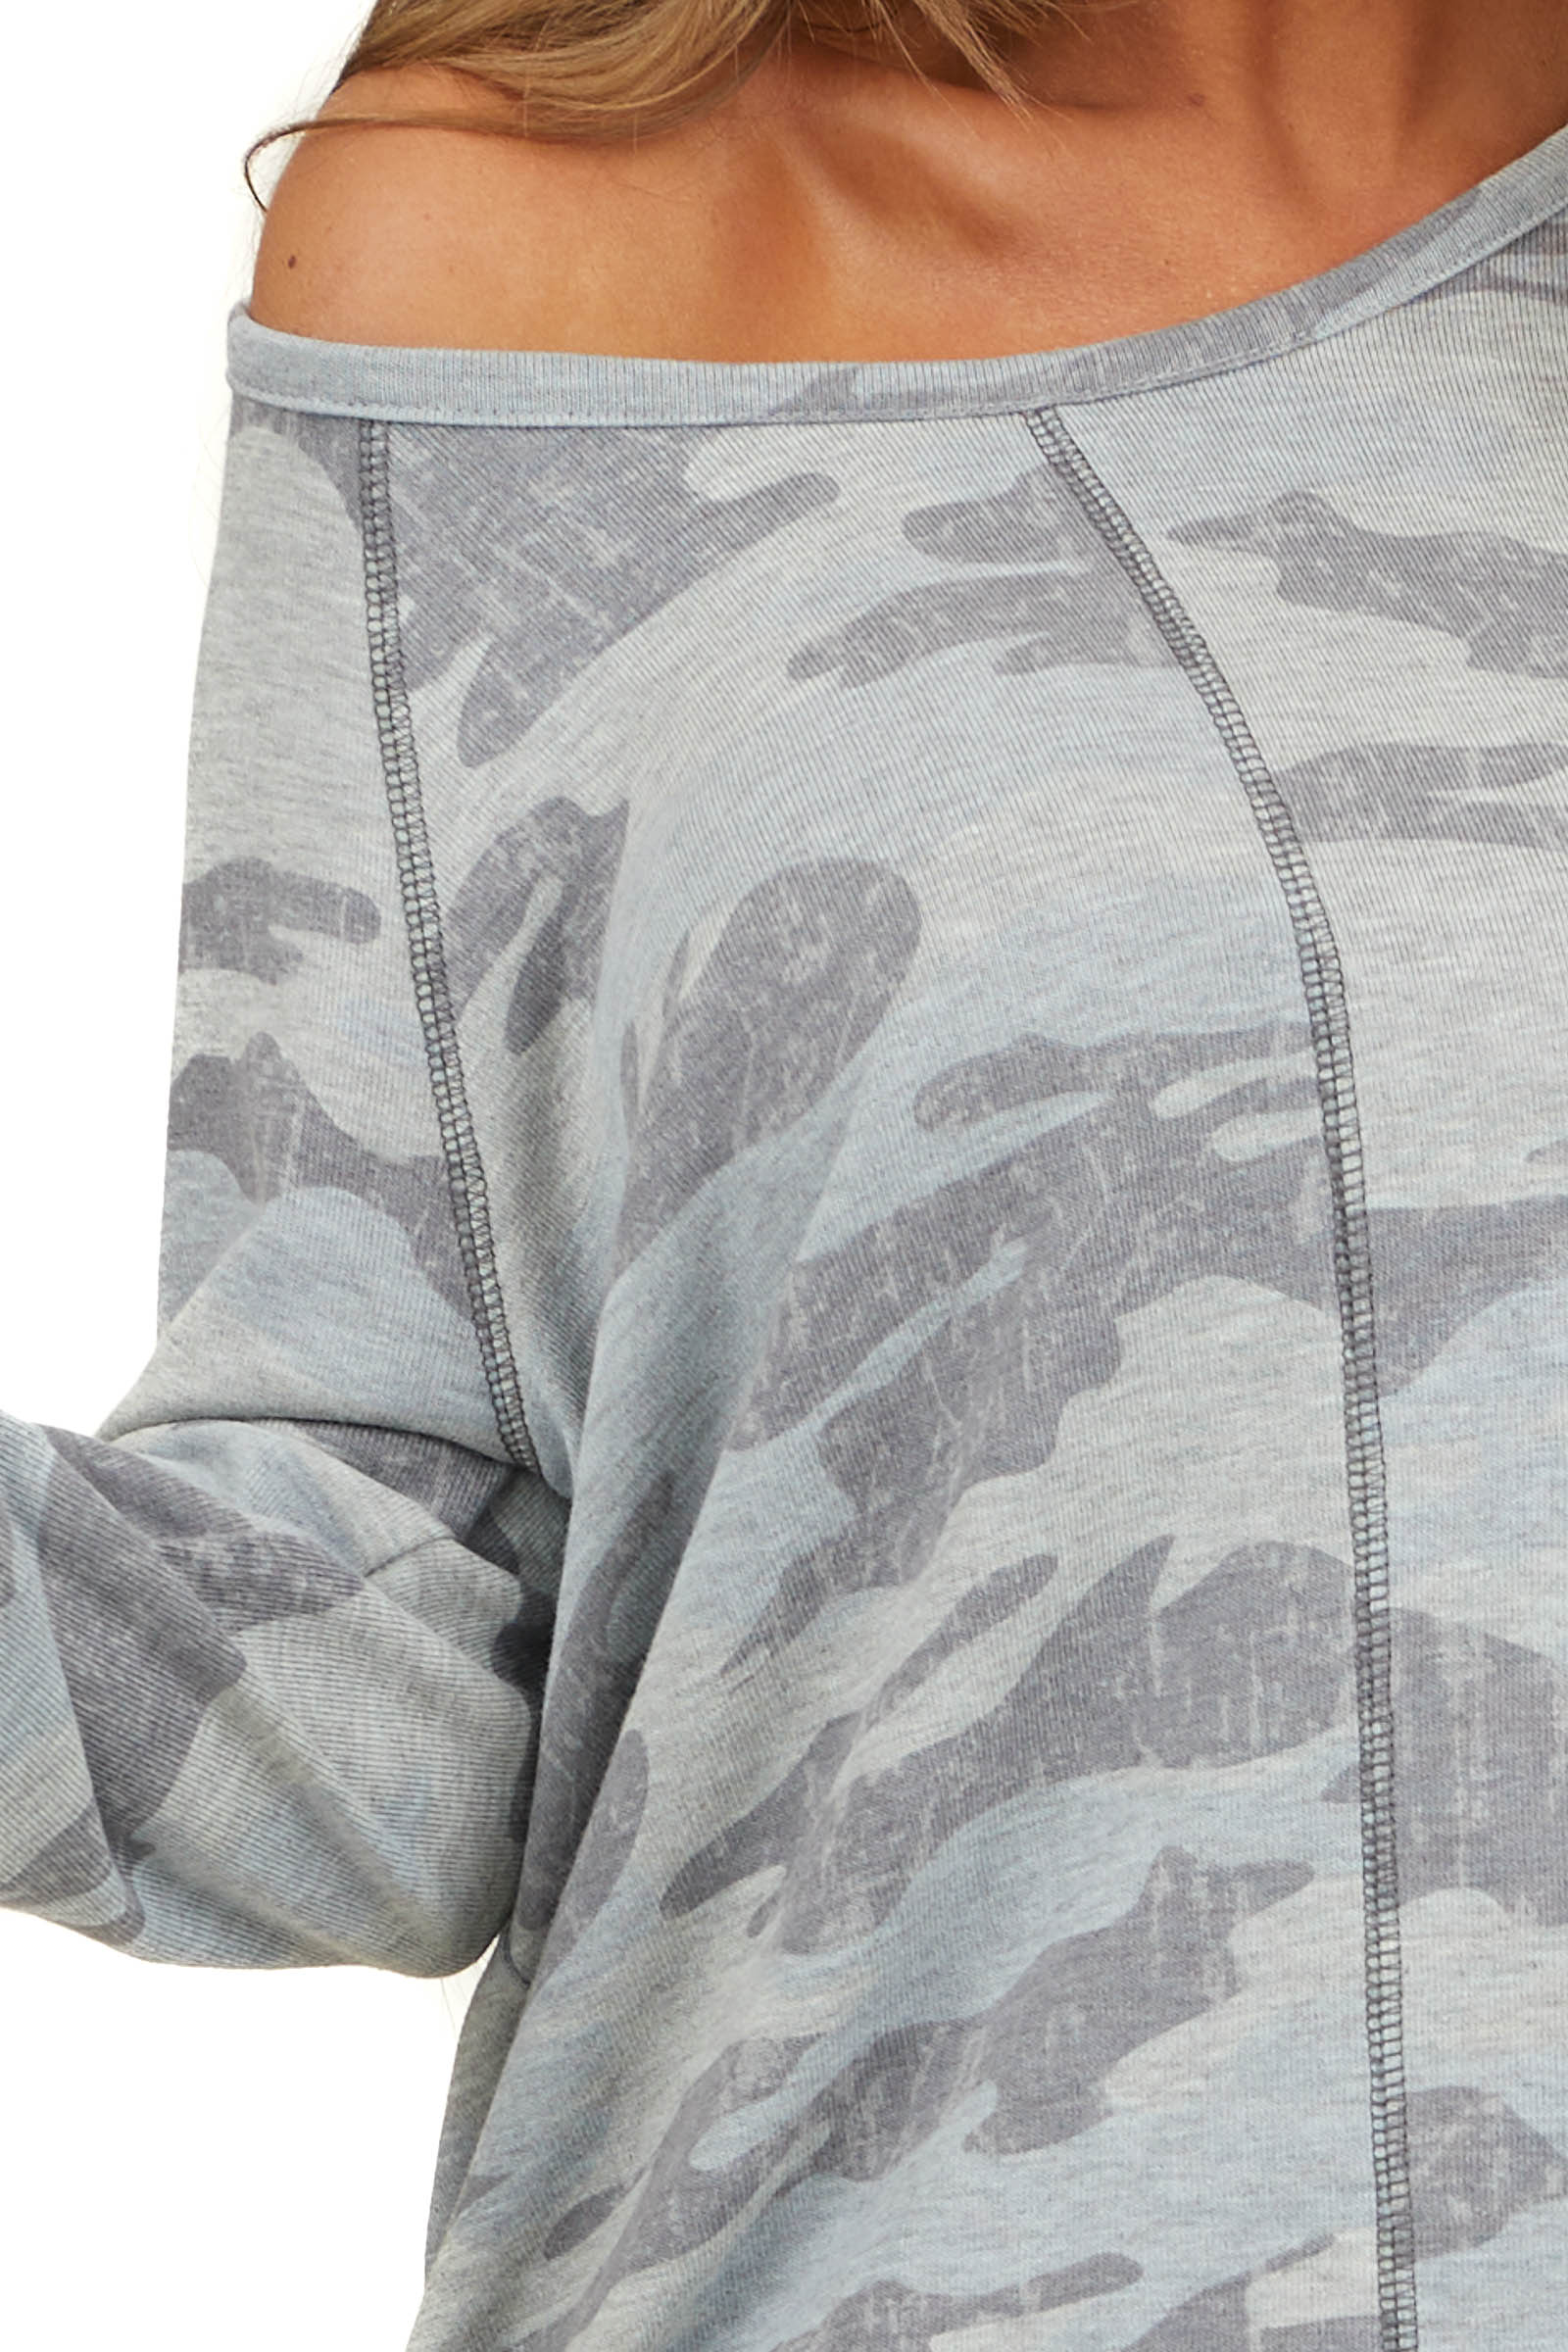 Heather Grey Camo Long Sleeve Top with Exposed Stitching